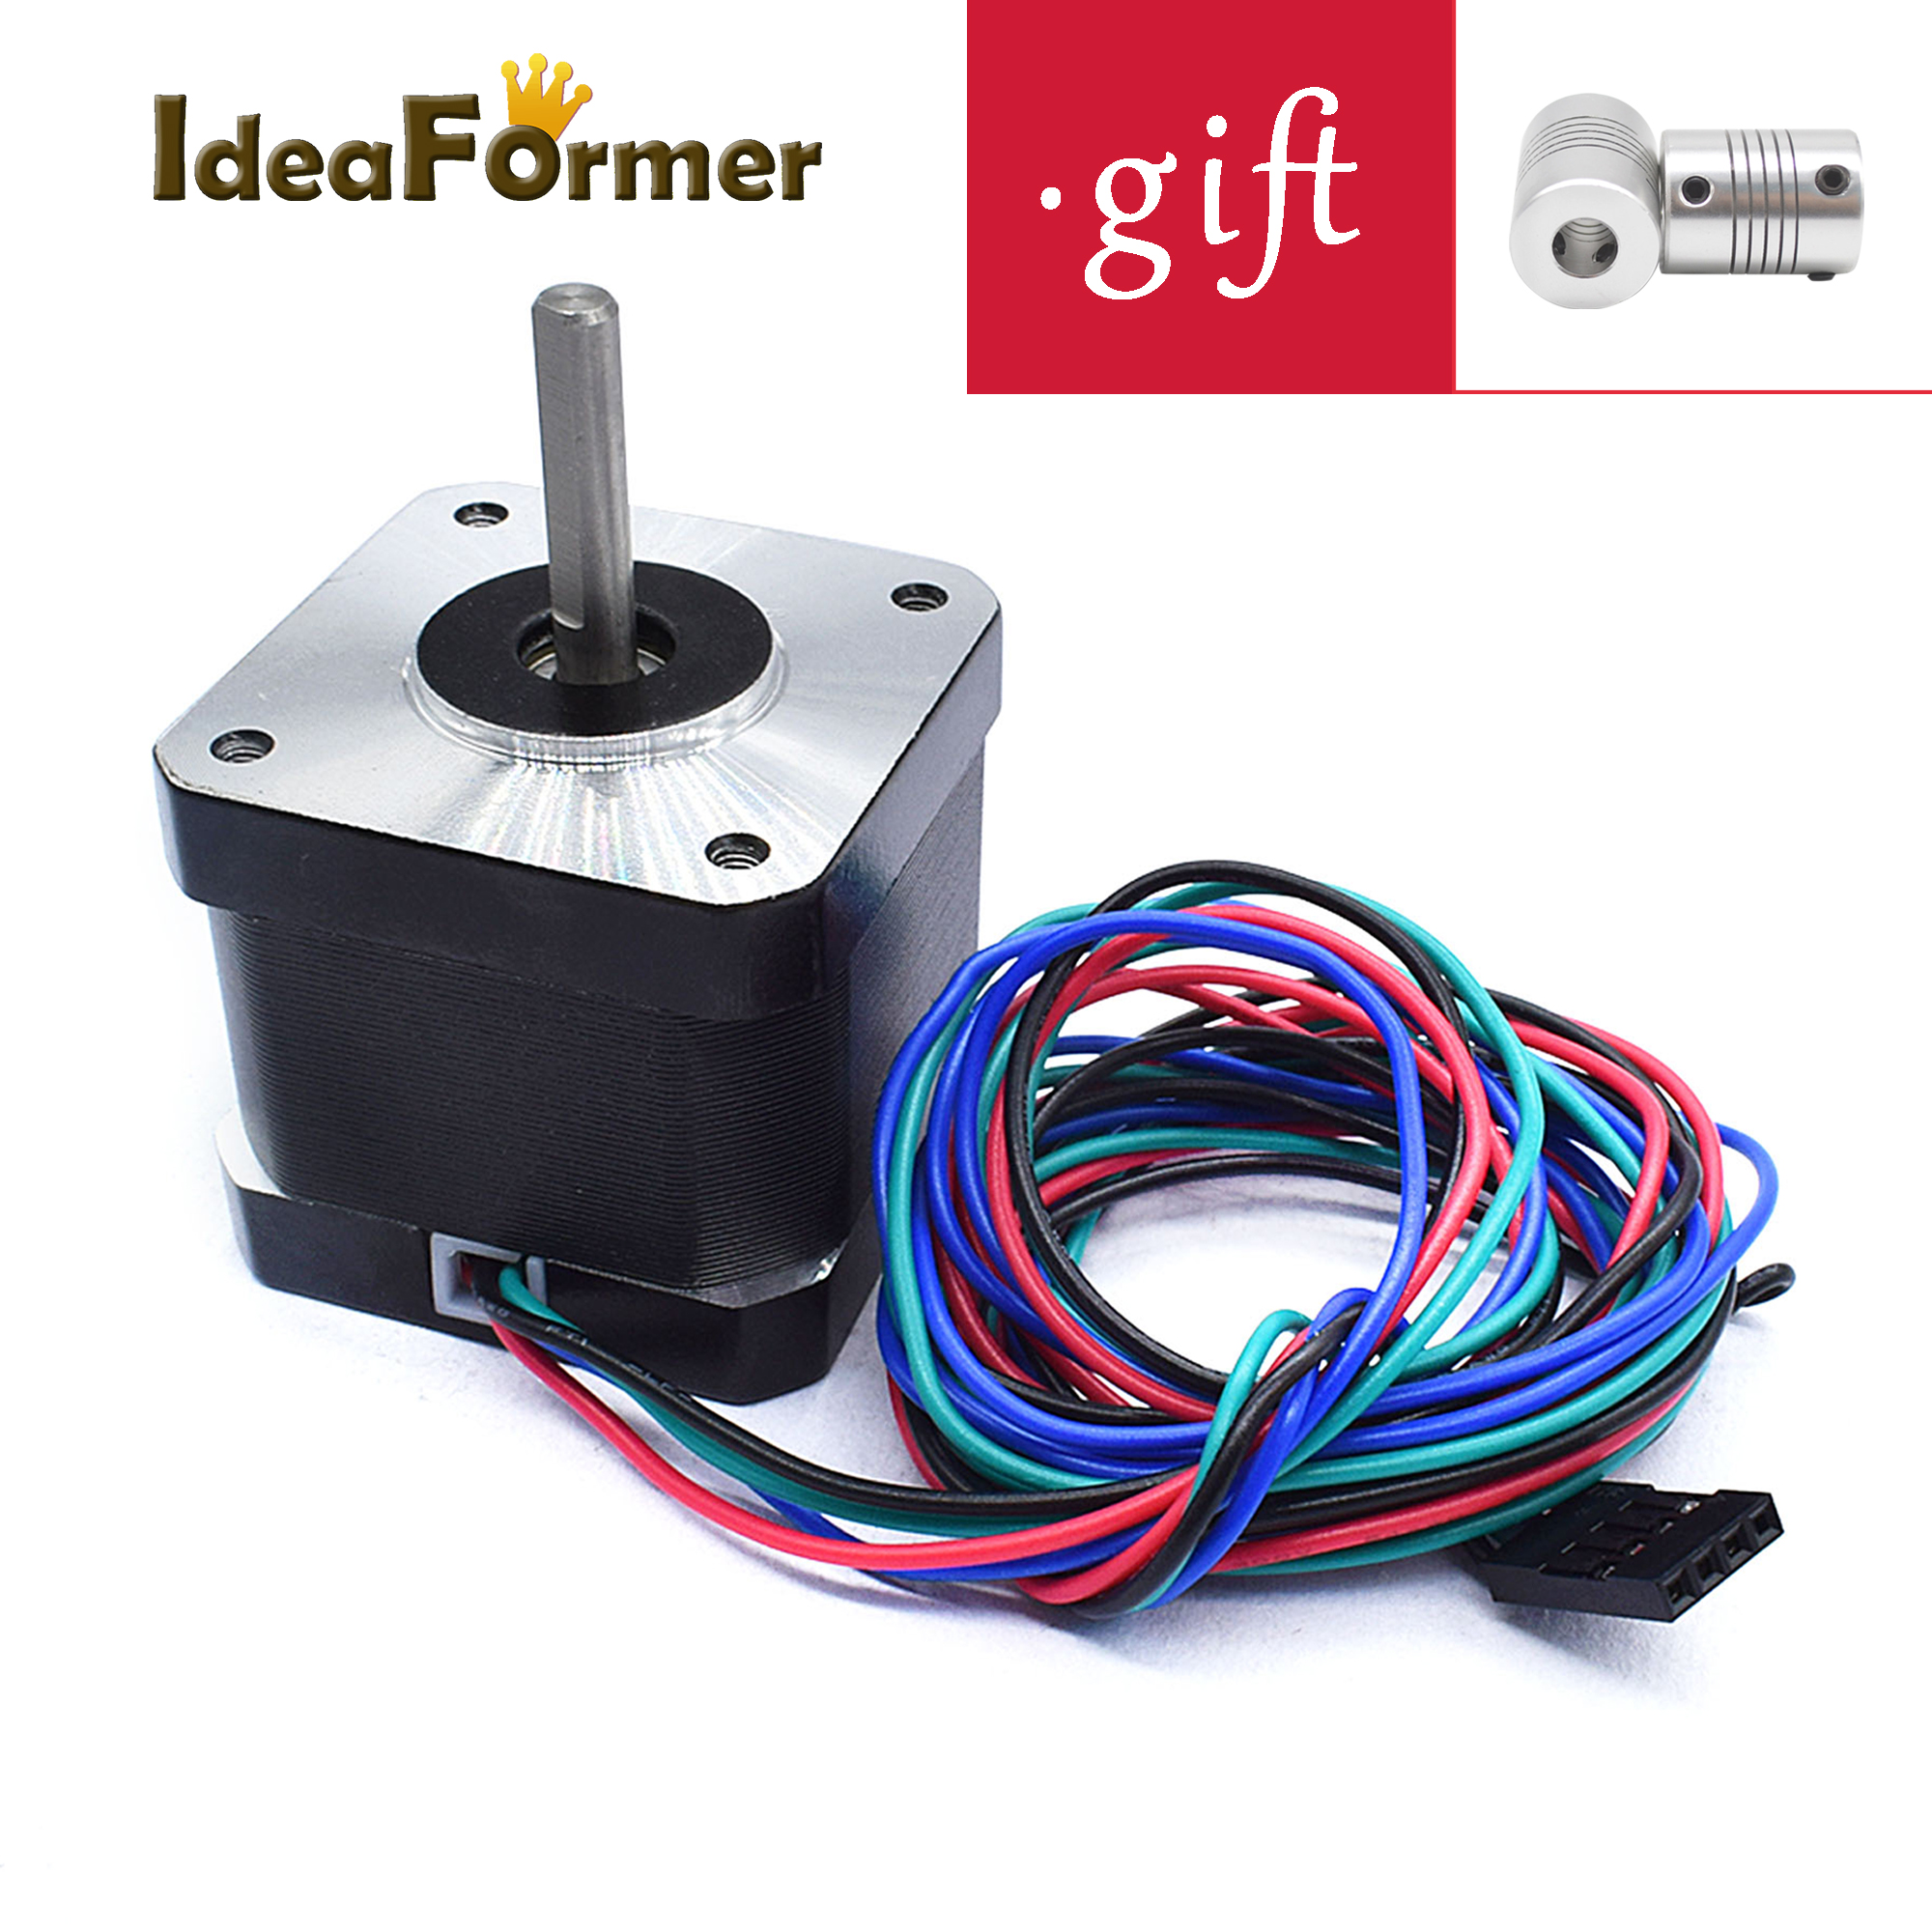 NEMA17 Stepper Motor (HS4401) with GIFT coupler Height 40 mm 1.7A Engine and CNC XYZ-Axis motor 4-lead 3D printer parts